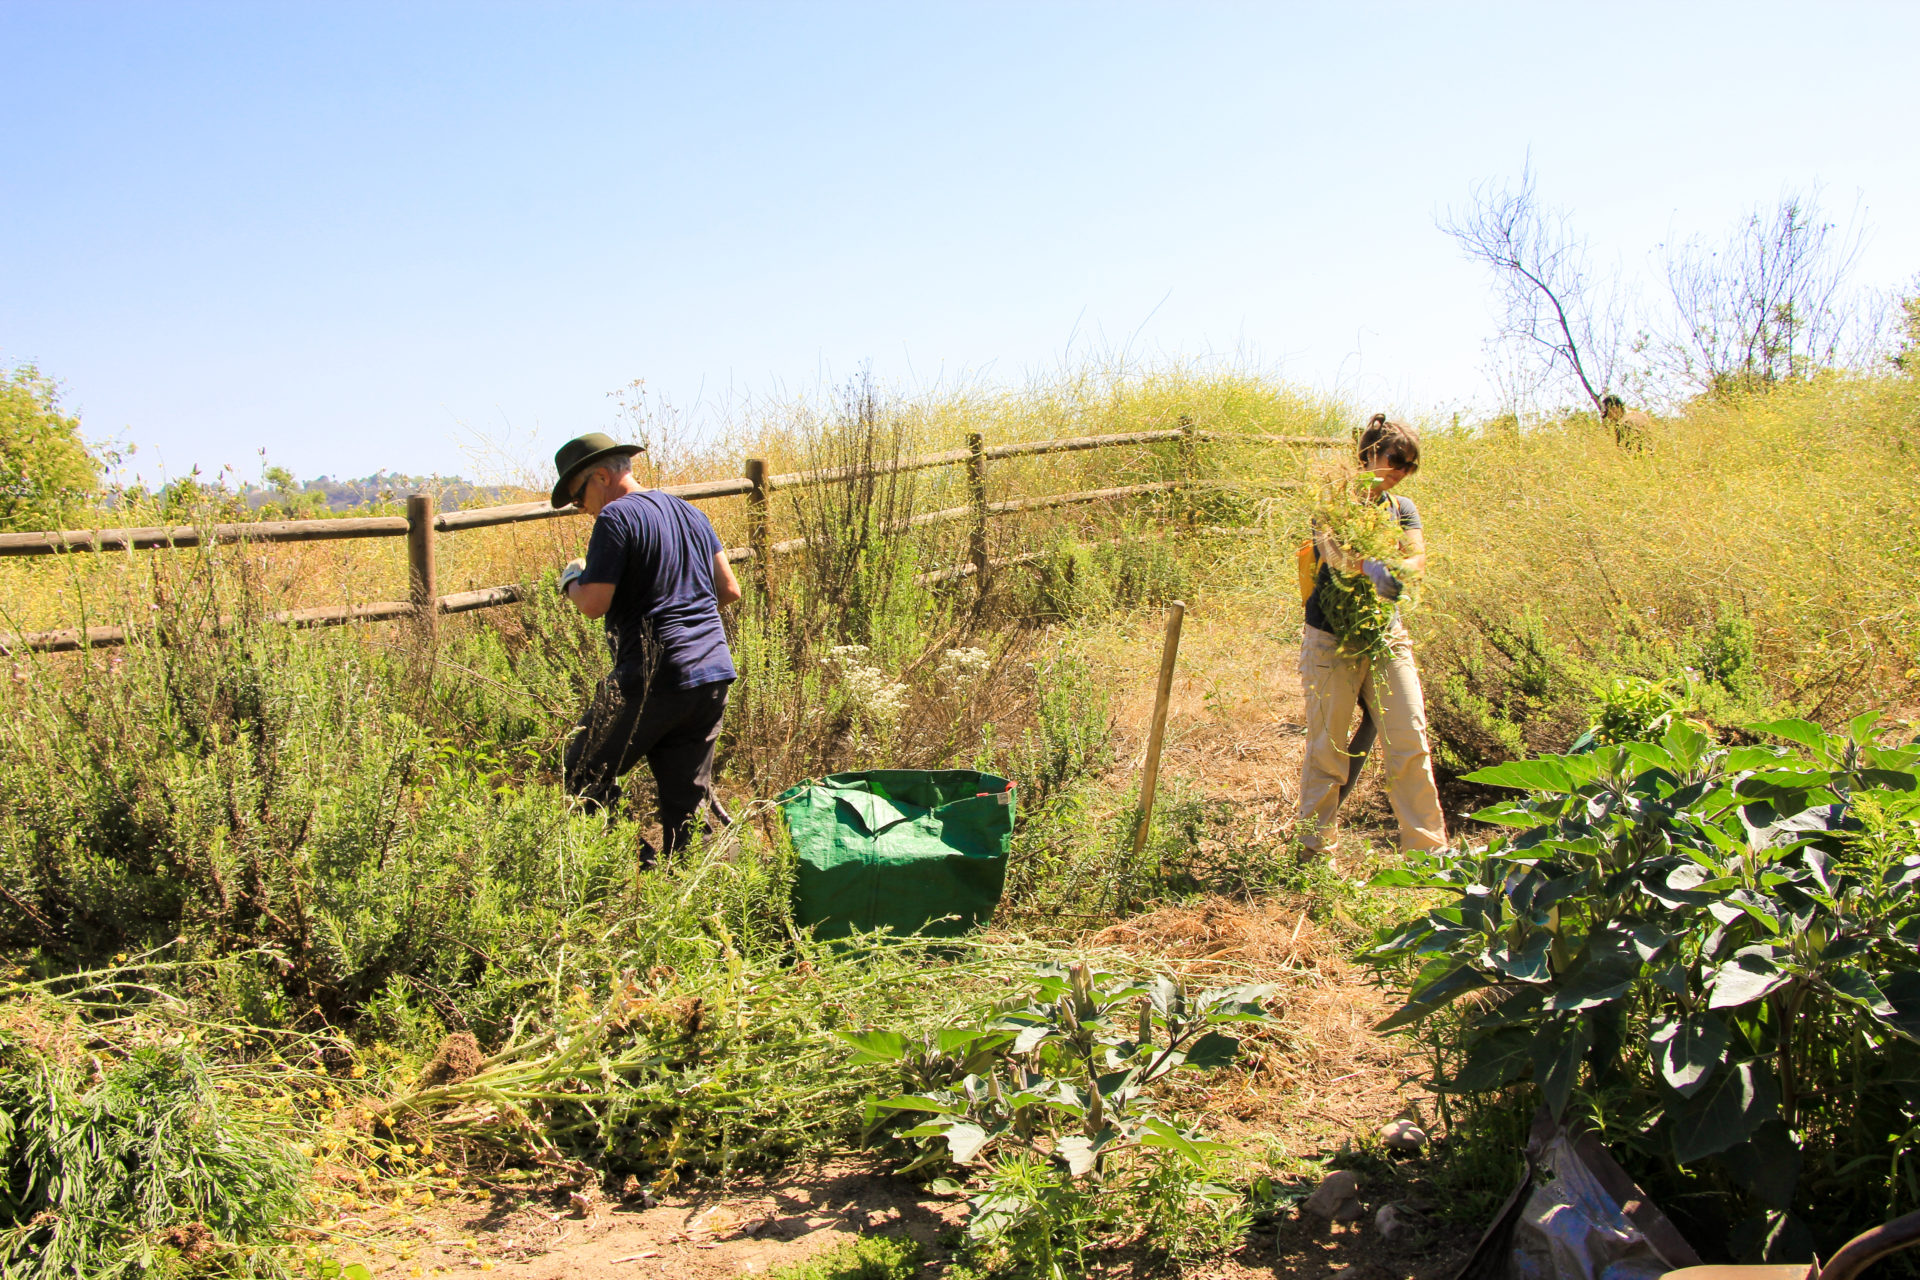 People pulling invasive plants